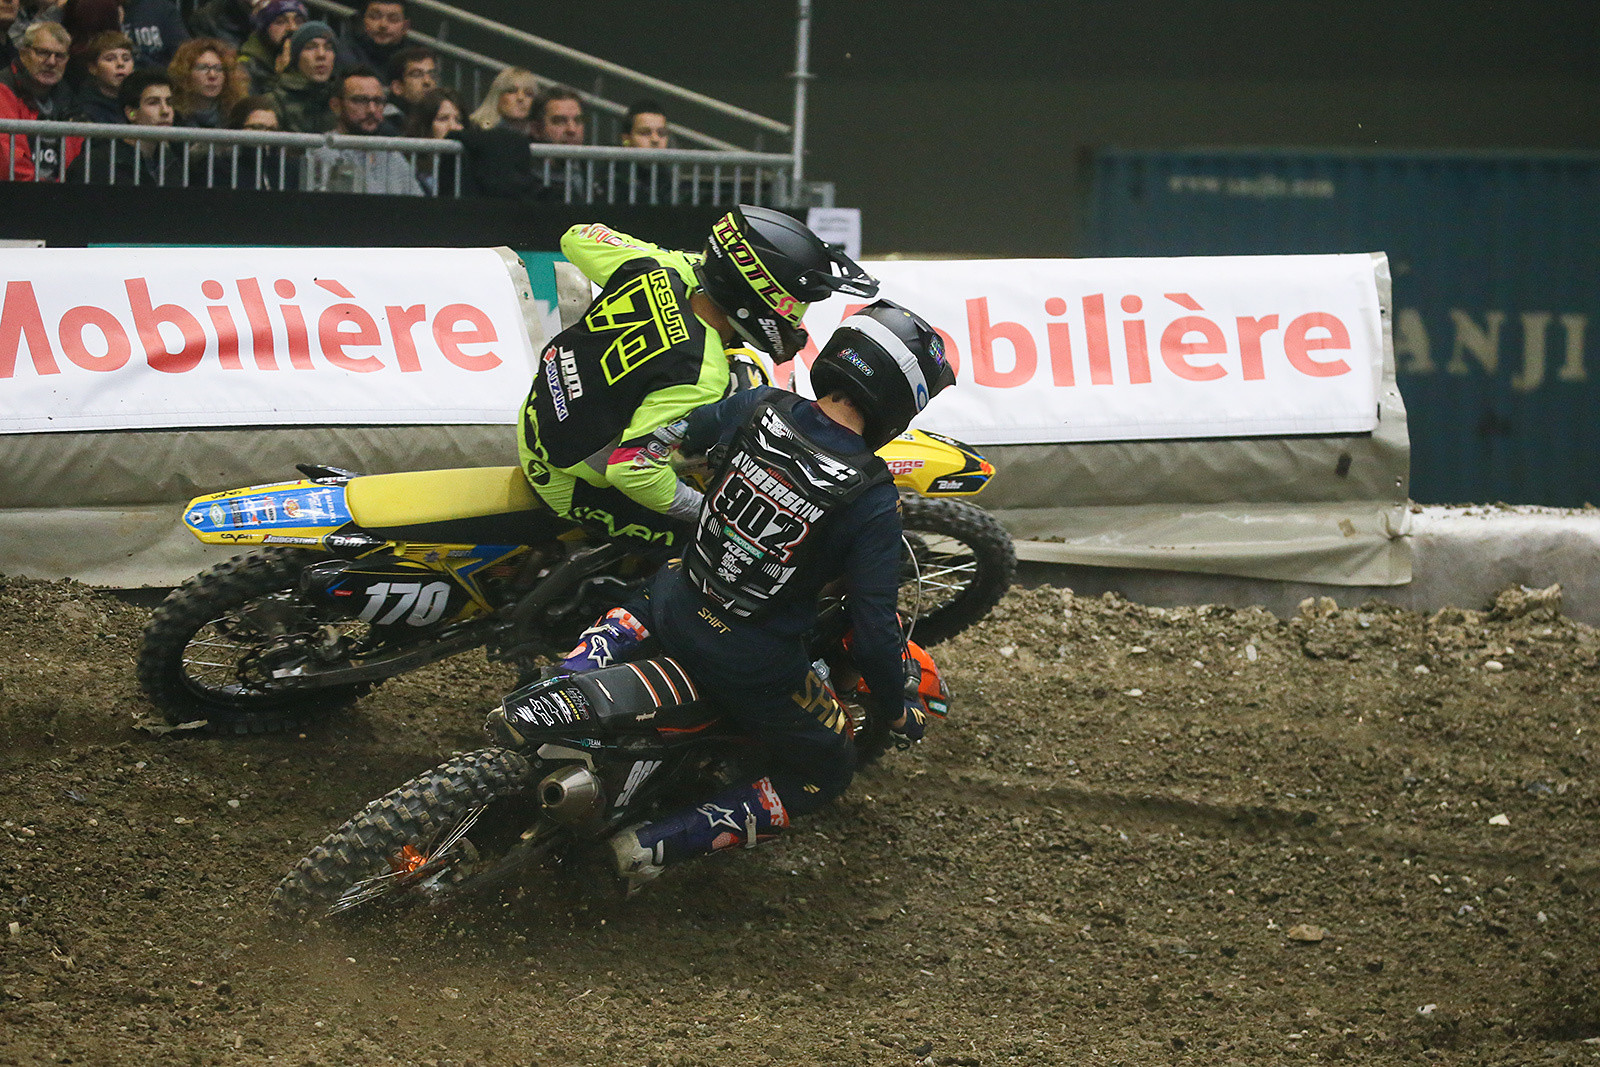 Yannis Irsuti and Killian Auberson were battling early on. Irsuti later crashed, and Auberson grabbed third.